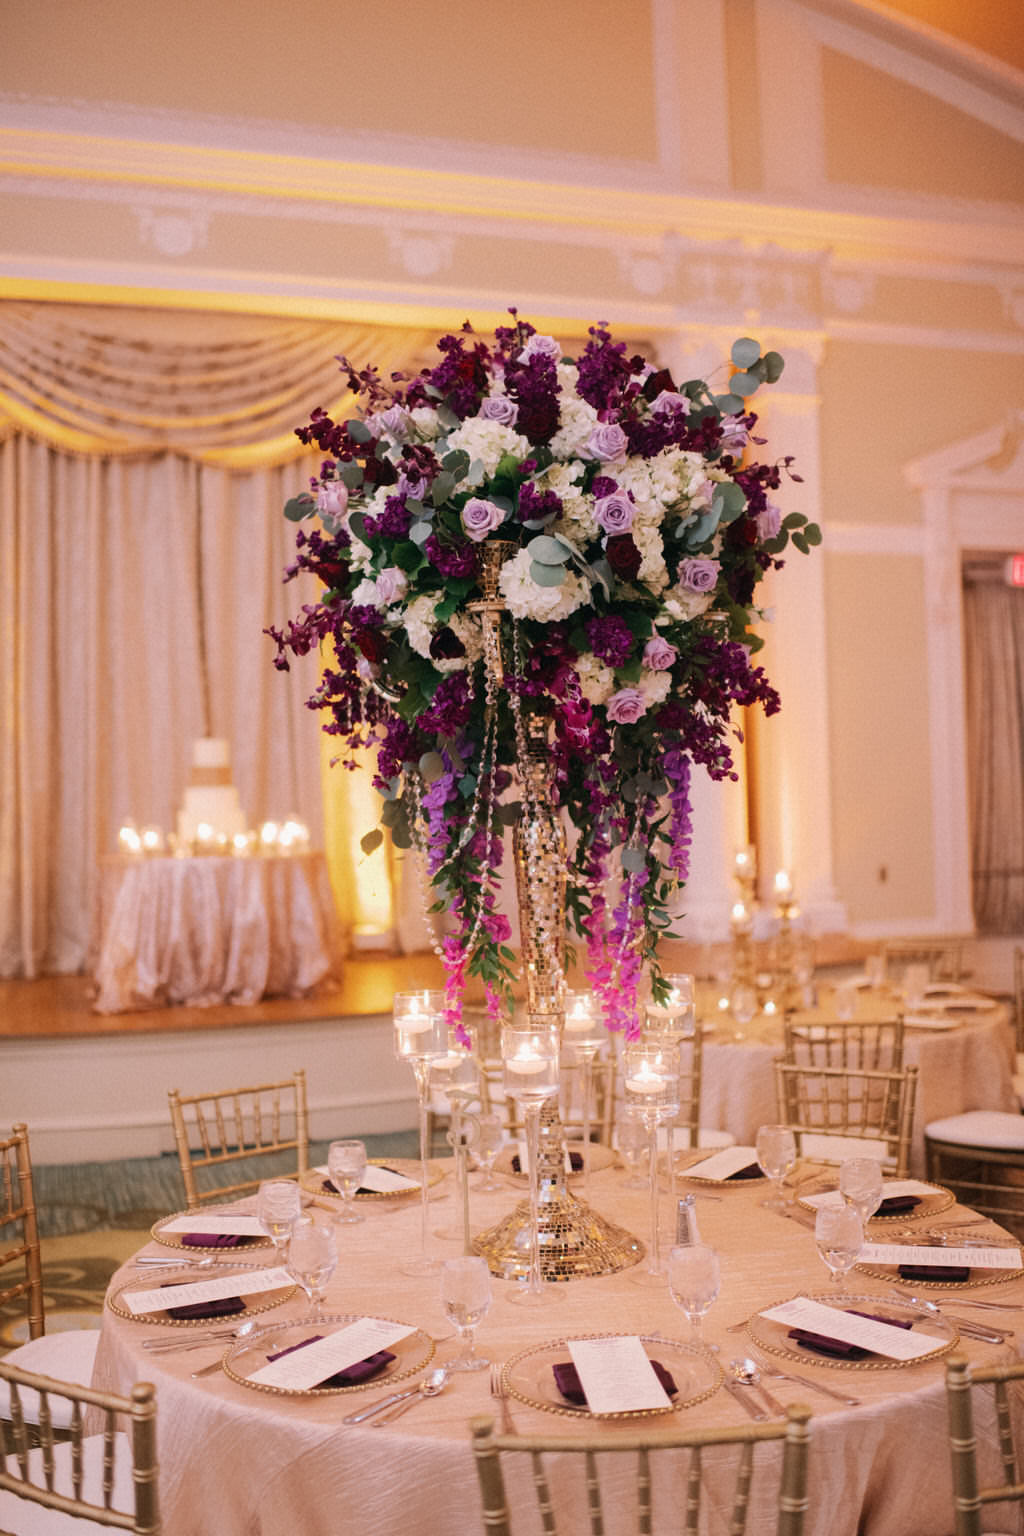 Elegant and Luxurious Wedding Reception Decor Portrait, Round Table with Gold Linen, Tall Purple, Plum, Lilac, Ivory and Hanging Amaranthus and Draped Crystals Floral Centerpiece